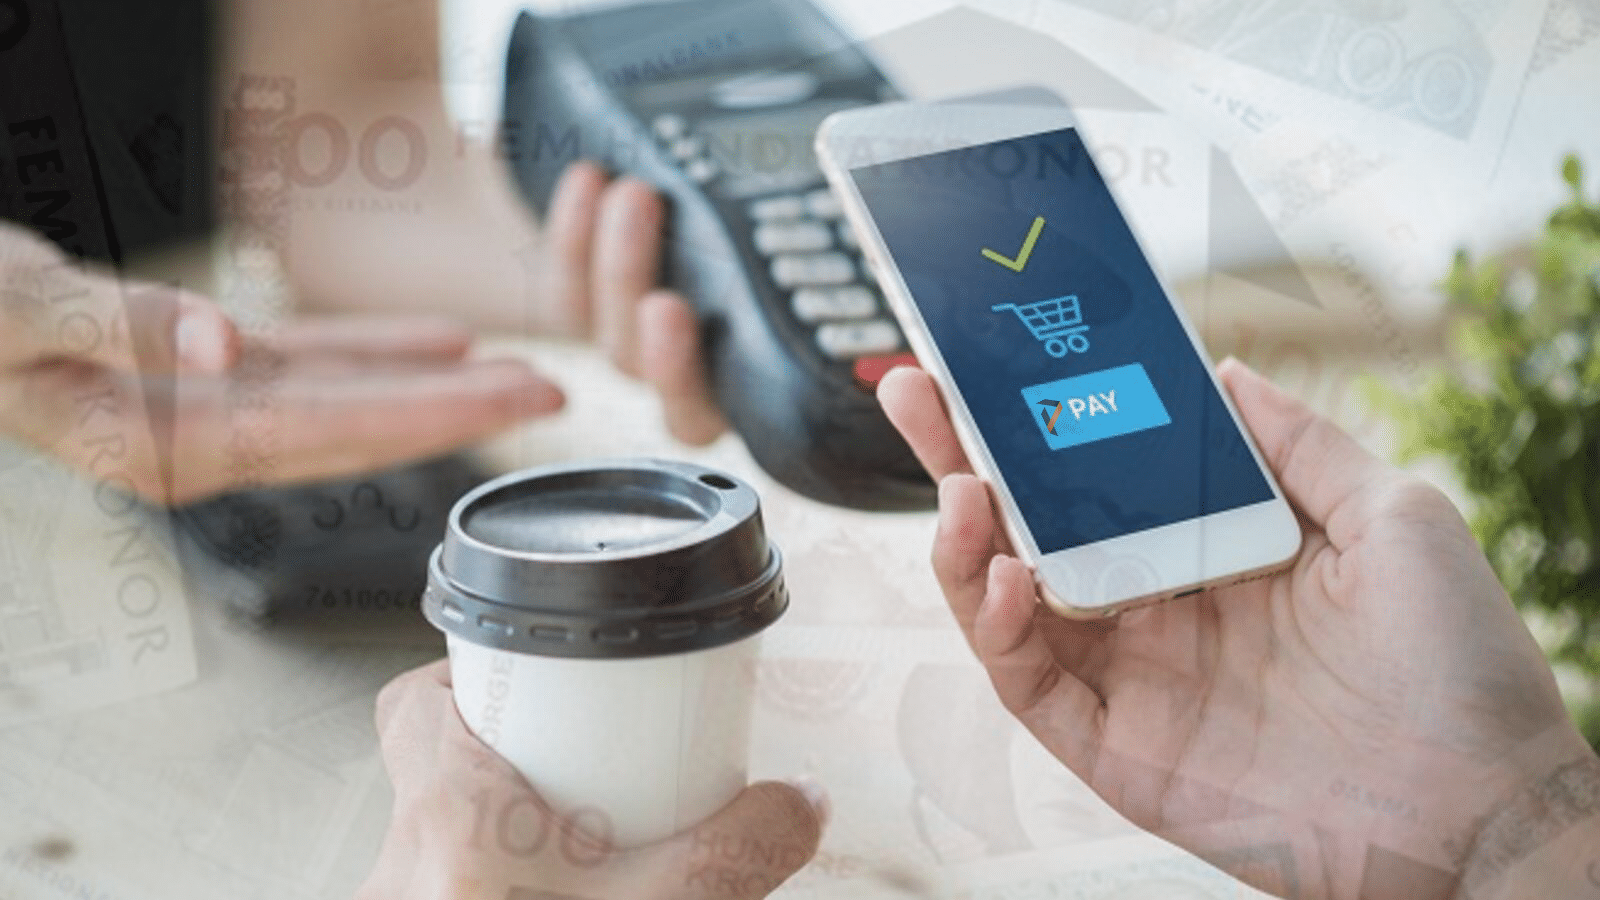 Pros and cons of a cashless society